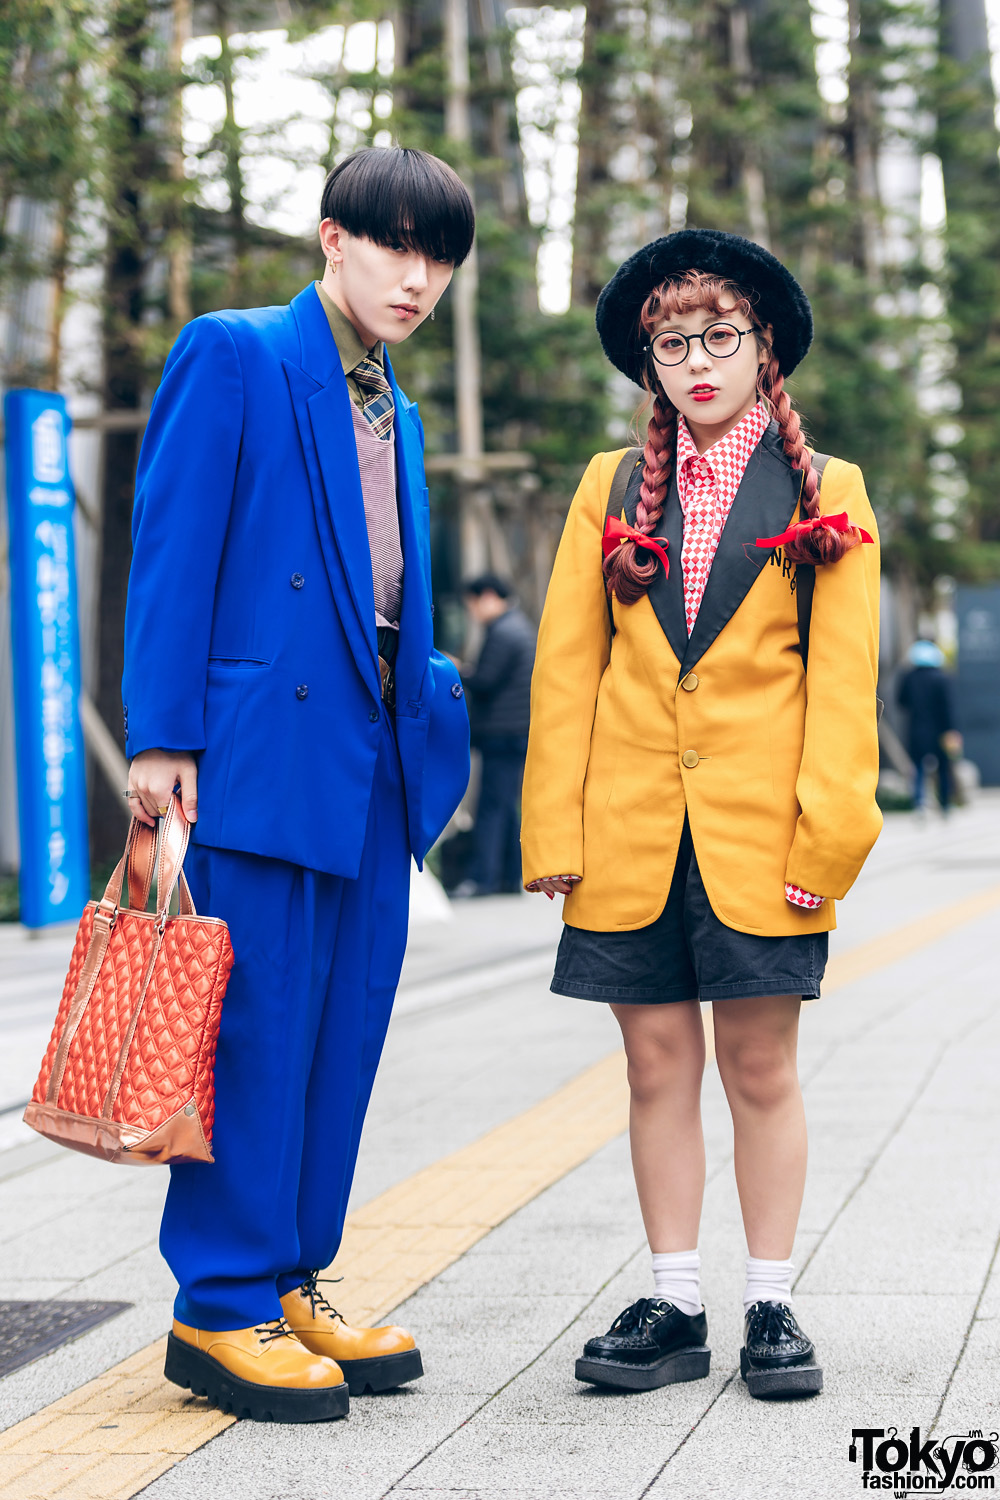 Tokyo Streetwear Styles w/ Twin Braids, Furry Hat, Elcasion Vintage Suit, Gucci Rings, Fjallraven Kanken Backpack & George Cox Creepers